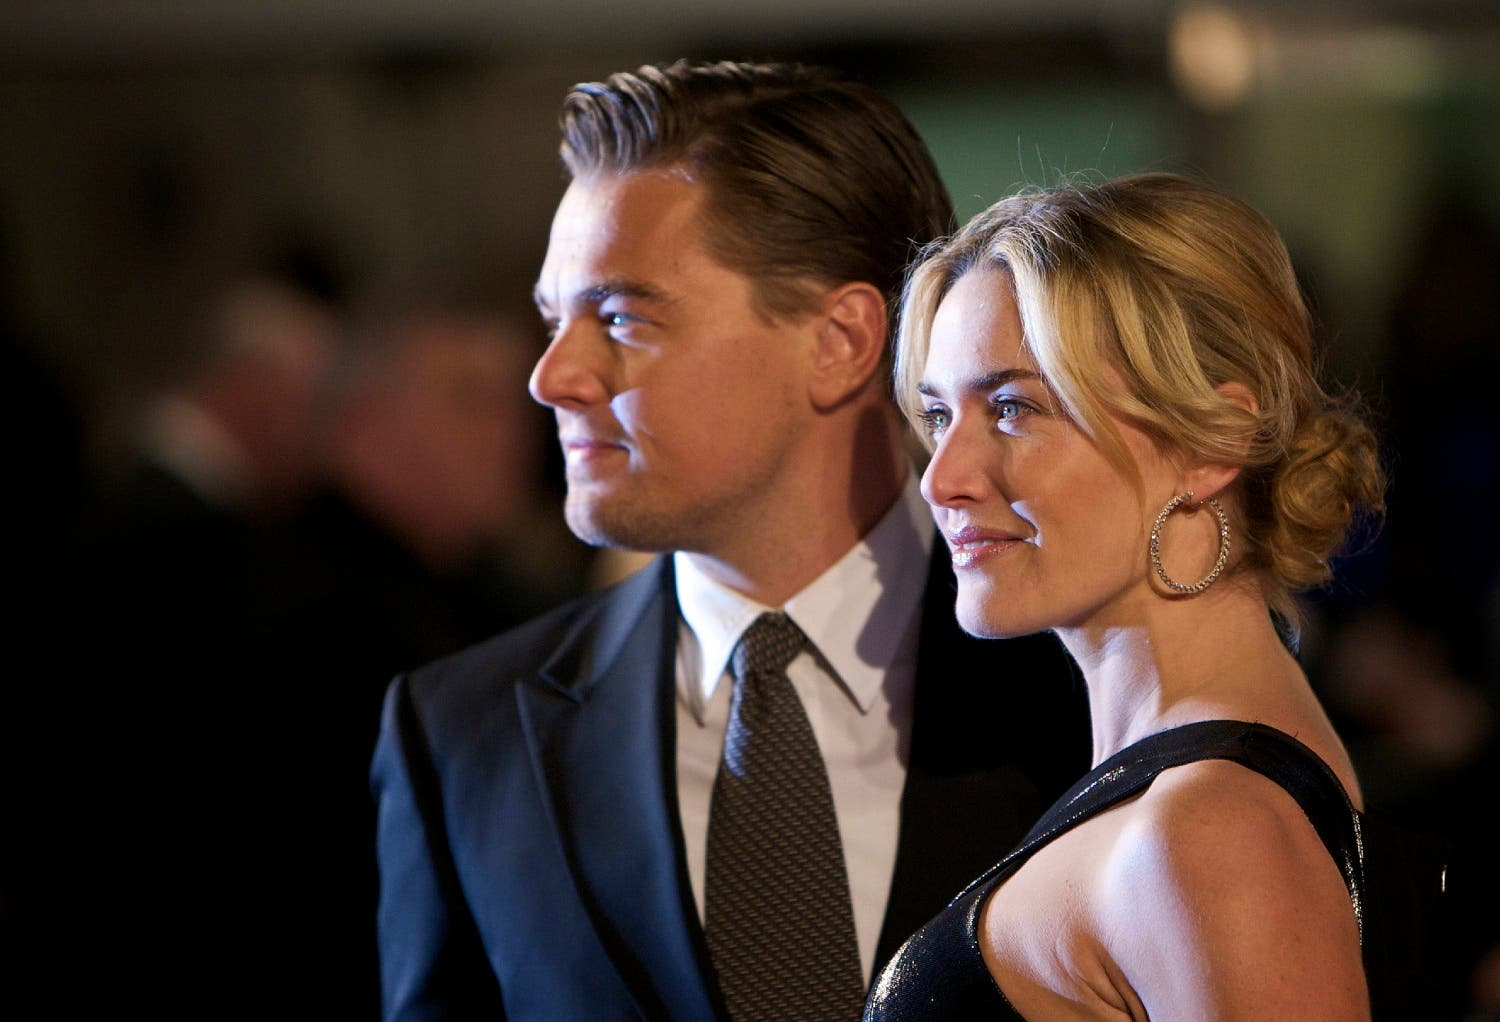 Winslet, 40, said she would be 'surprised' if DiCaprio did not land an Oscar on his sixth nomination. (File photo: AP)